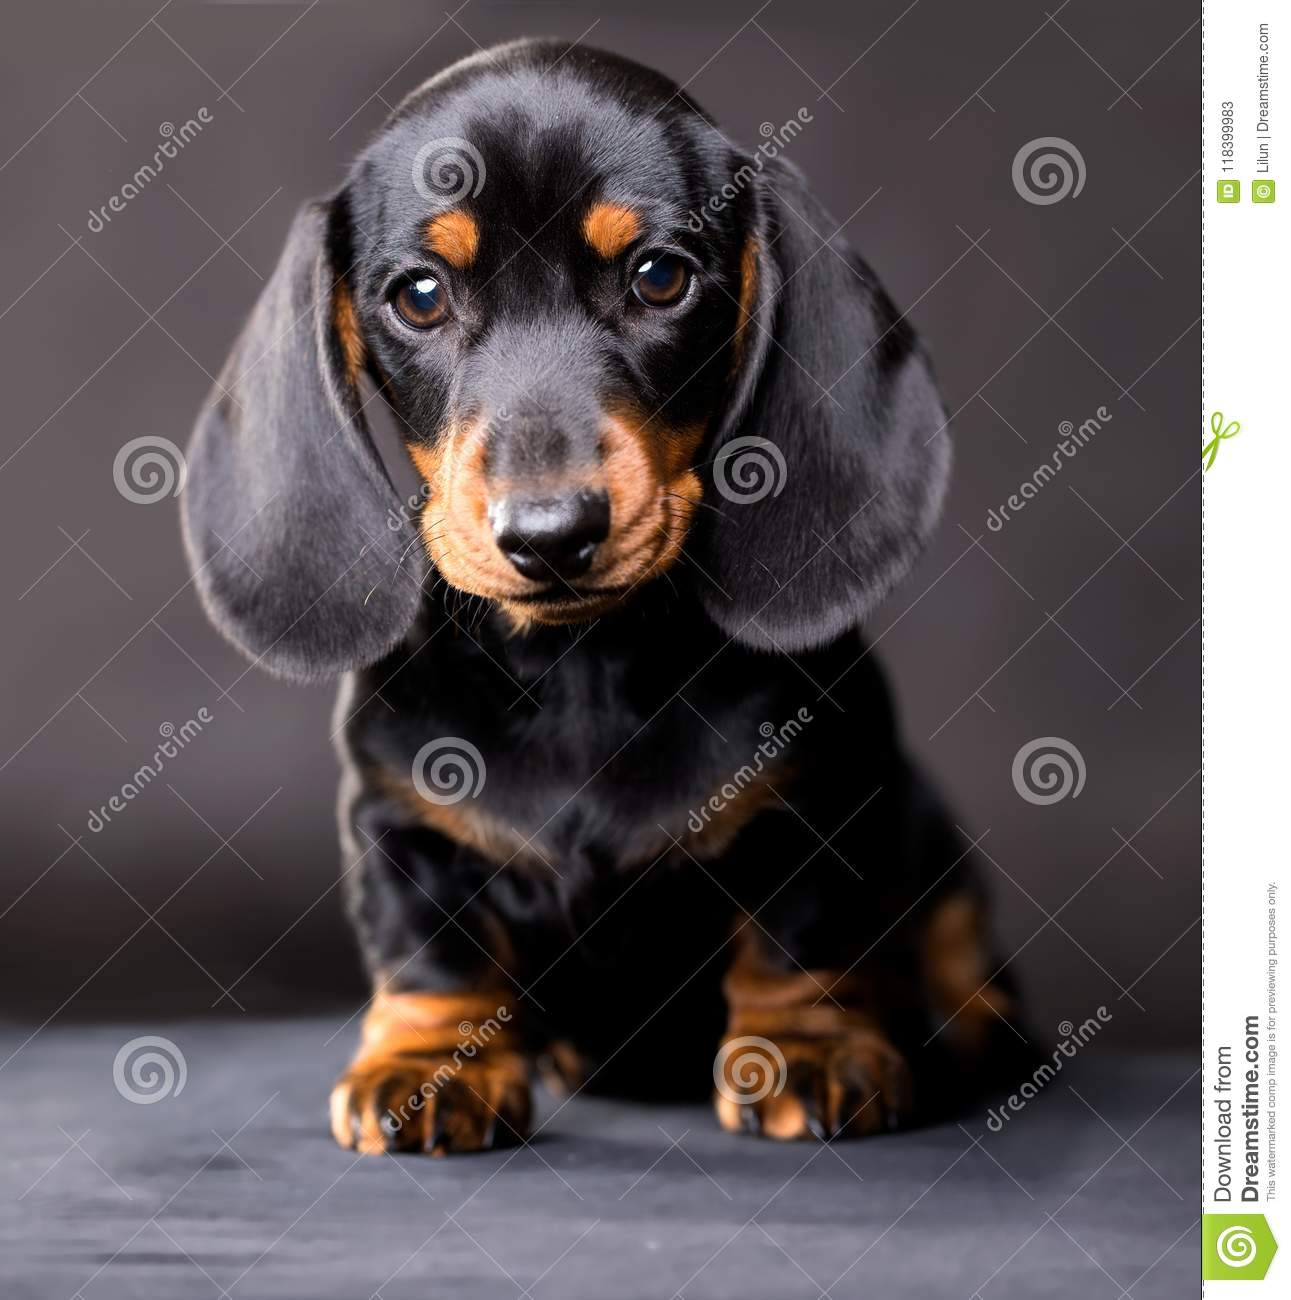 Dachshund Dog Black Tan Stock Image Image Of Carnivore 118399983